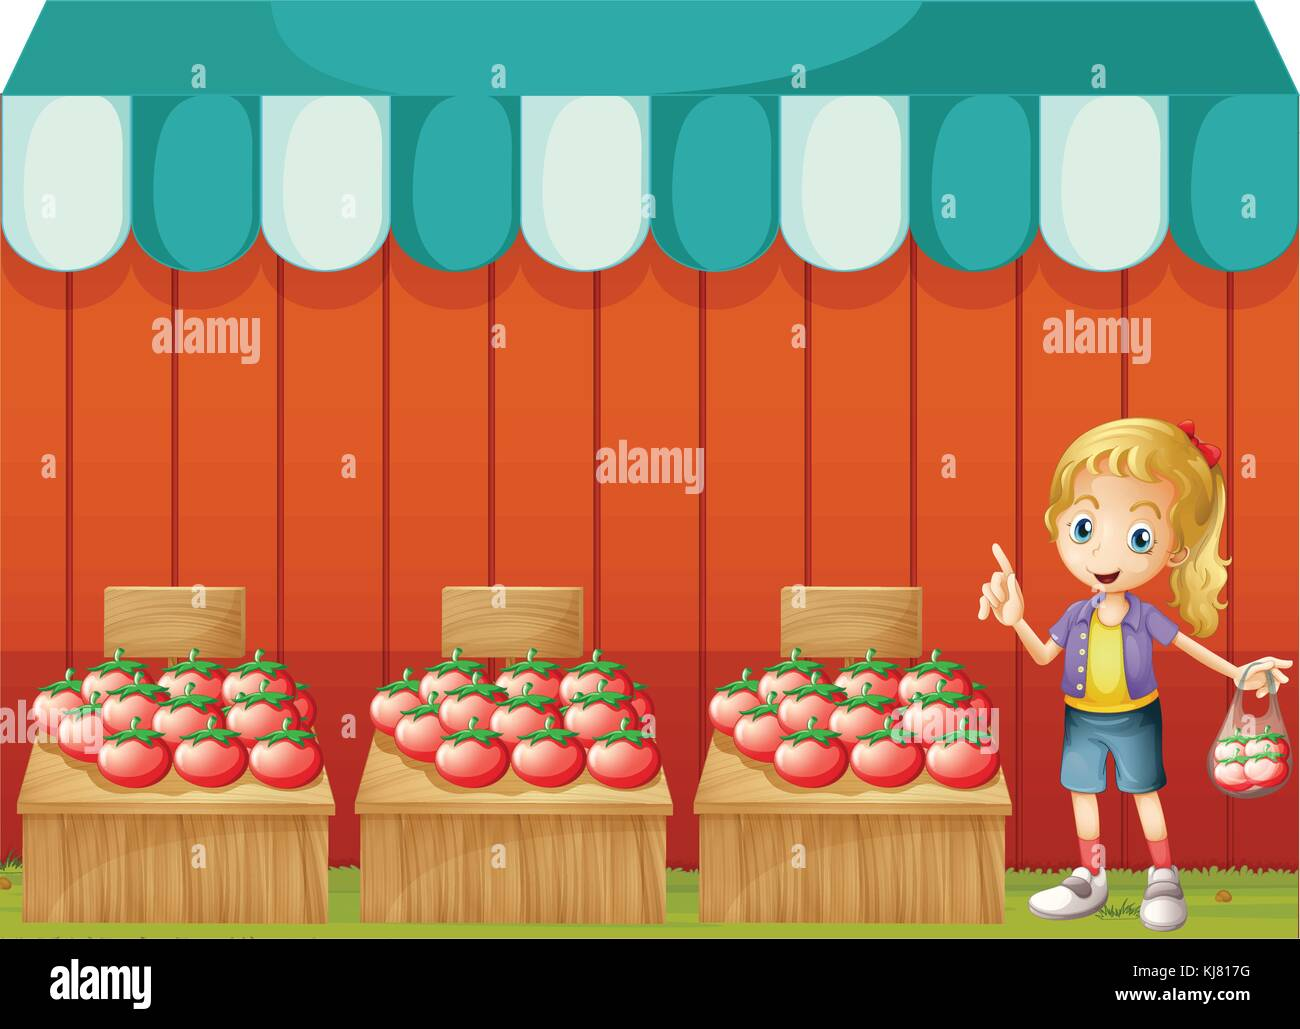 Illustration of a fruitstand with a young girl on a white background Stock Vector